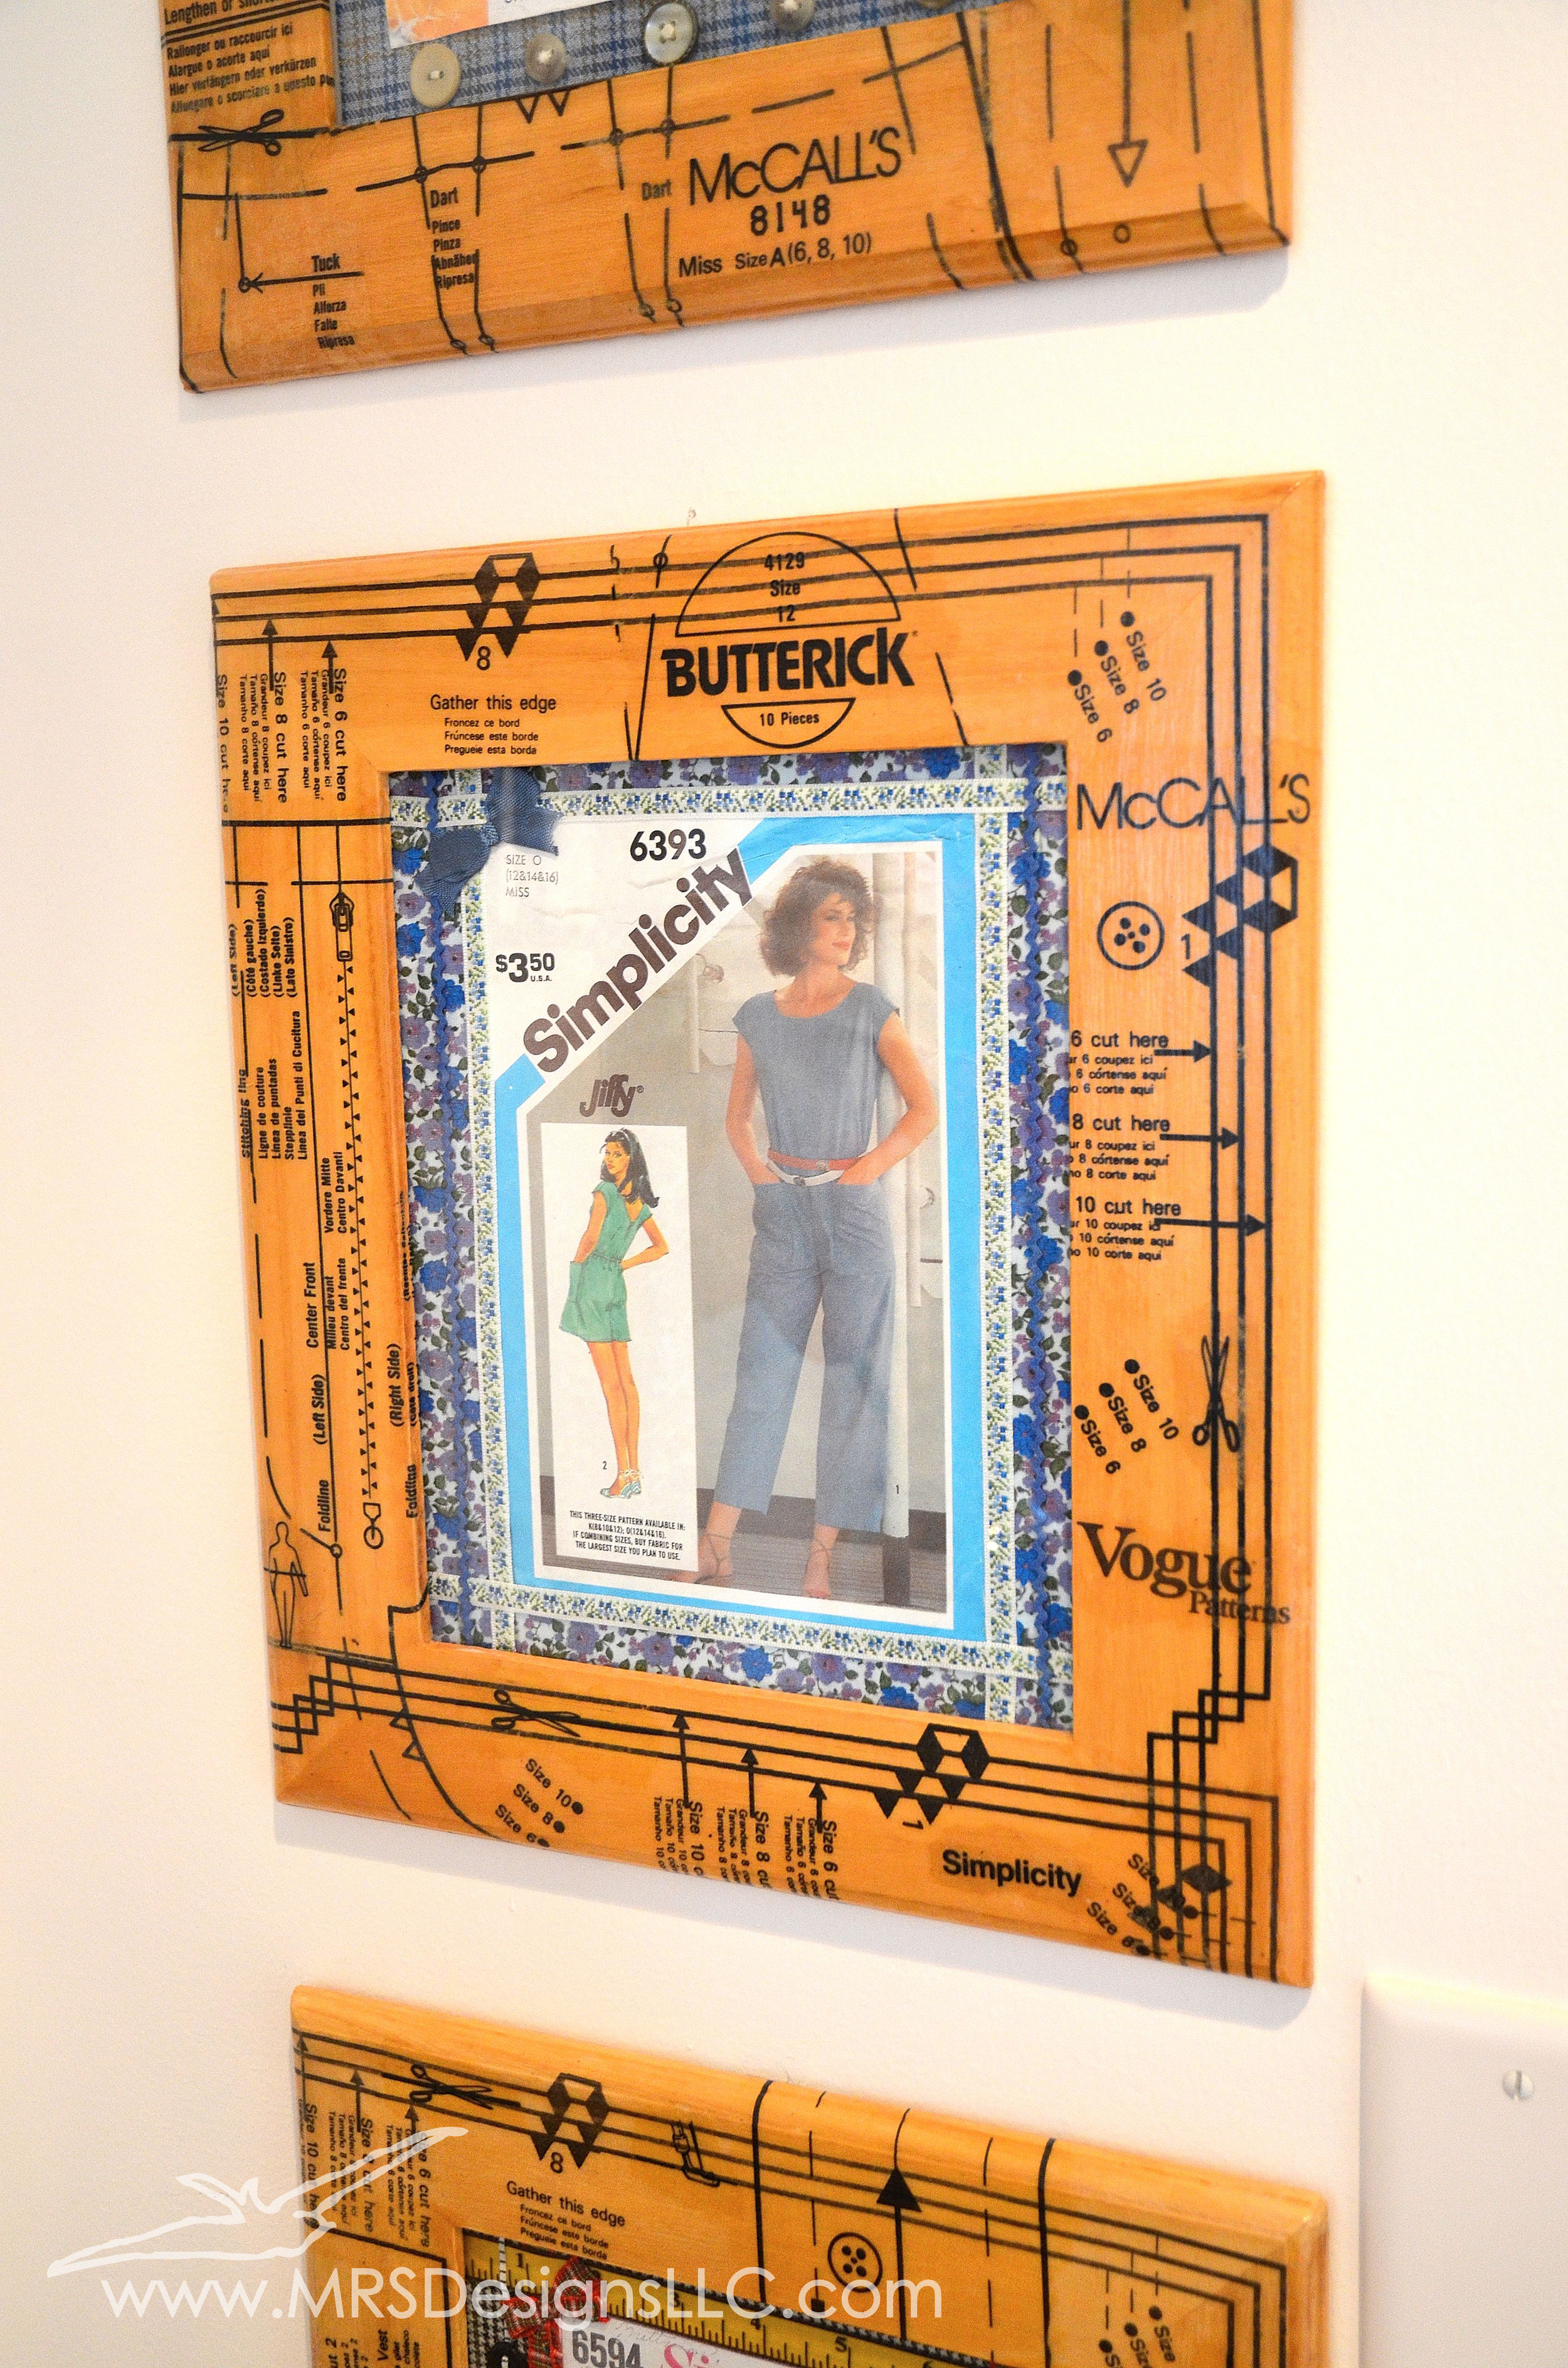 MRS Designs Blog - Decoupage unfinished frames with sewing patterns for a fun crafty look!.jpg